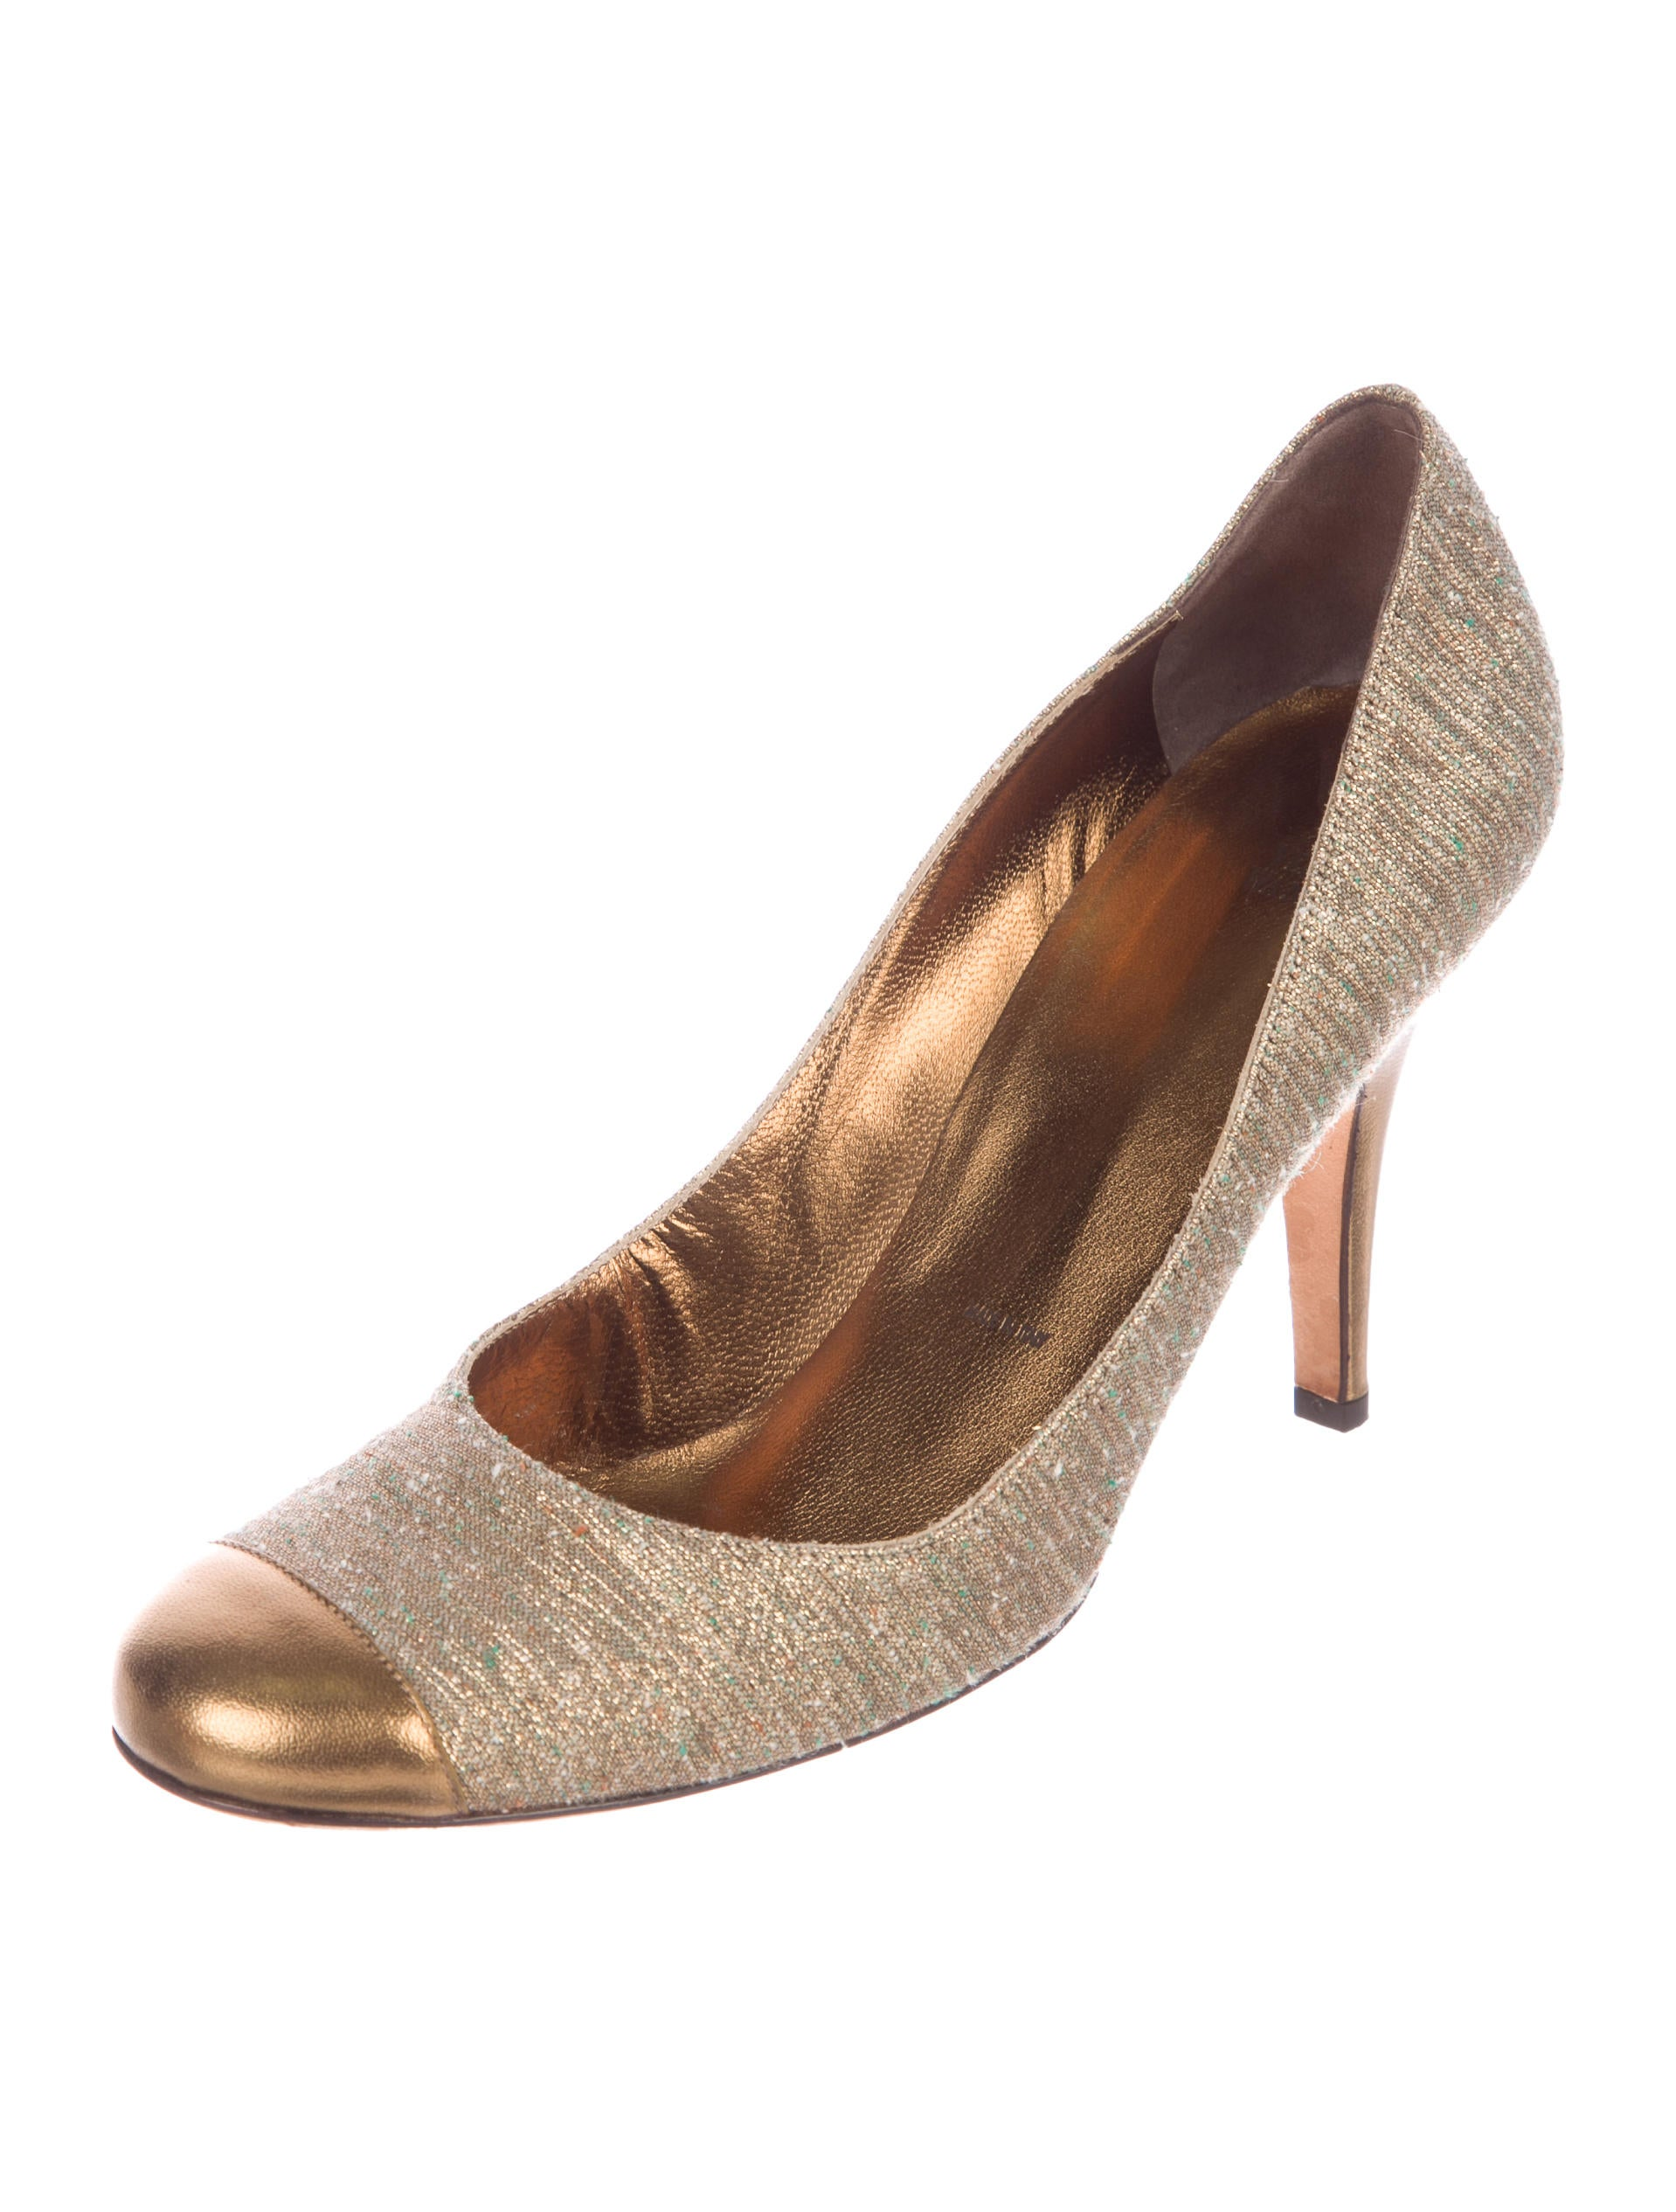 deals sale online Vera Wang Tweed Cap-Toe Pumps original for sale buy cheap low cost cheap sale discounts cheap price low shipping fee n1ZZp3wP